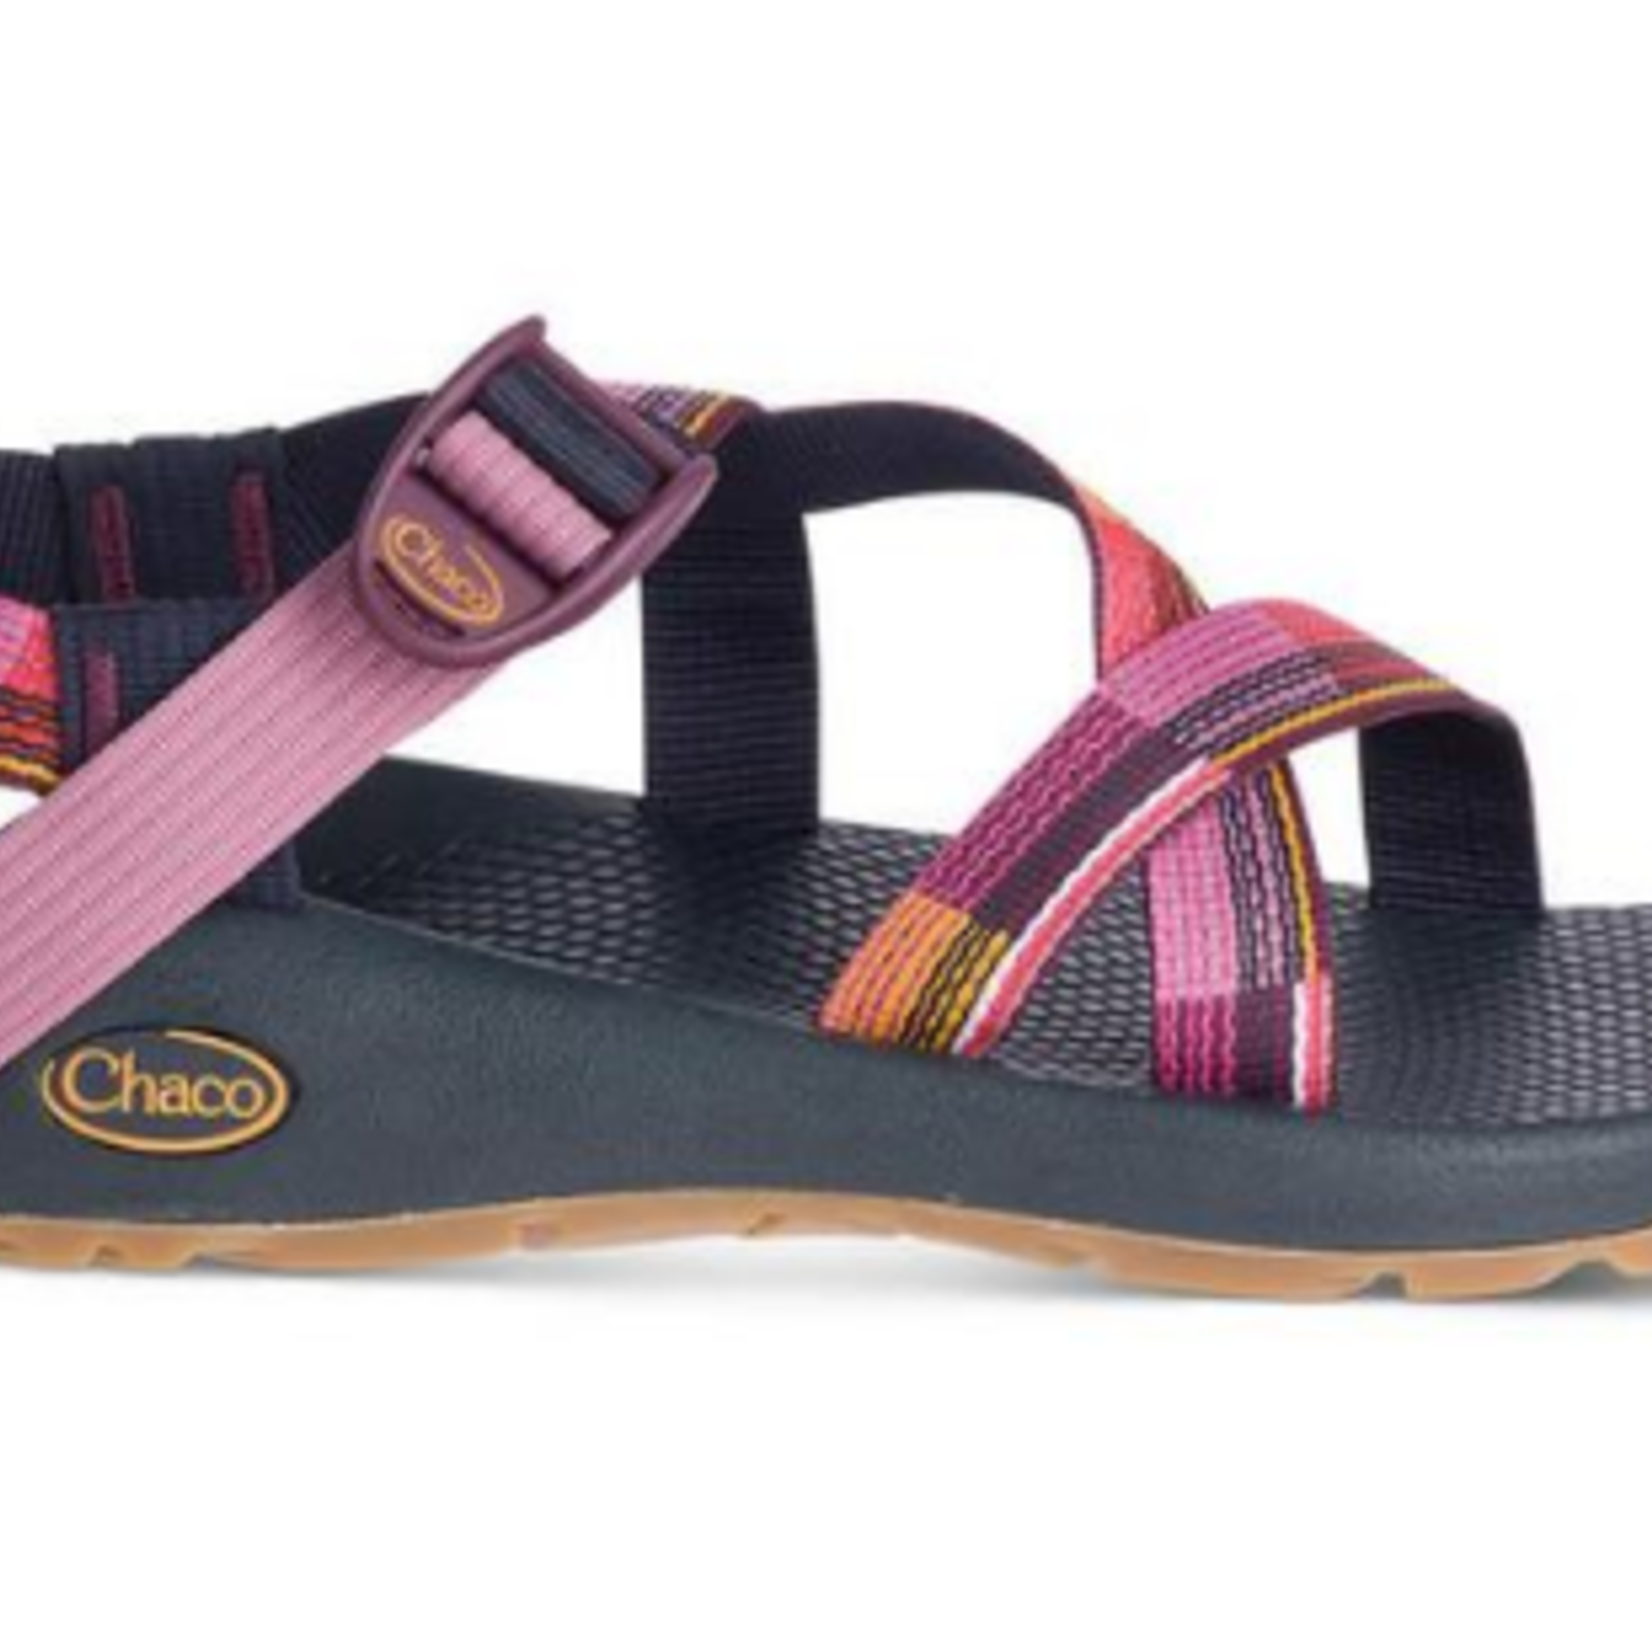 Chaco Chaco Z1 W's Classic